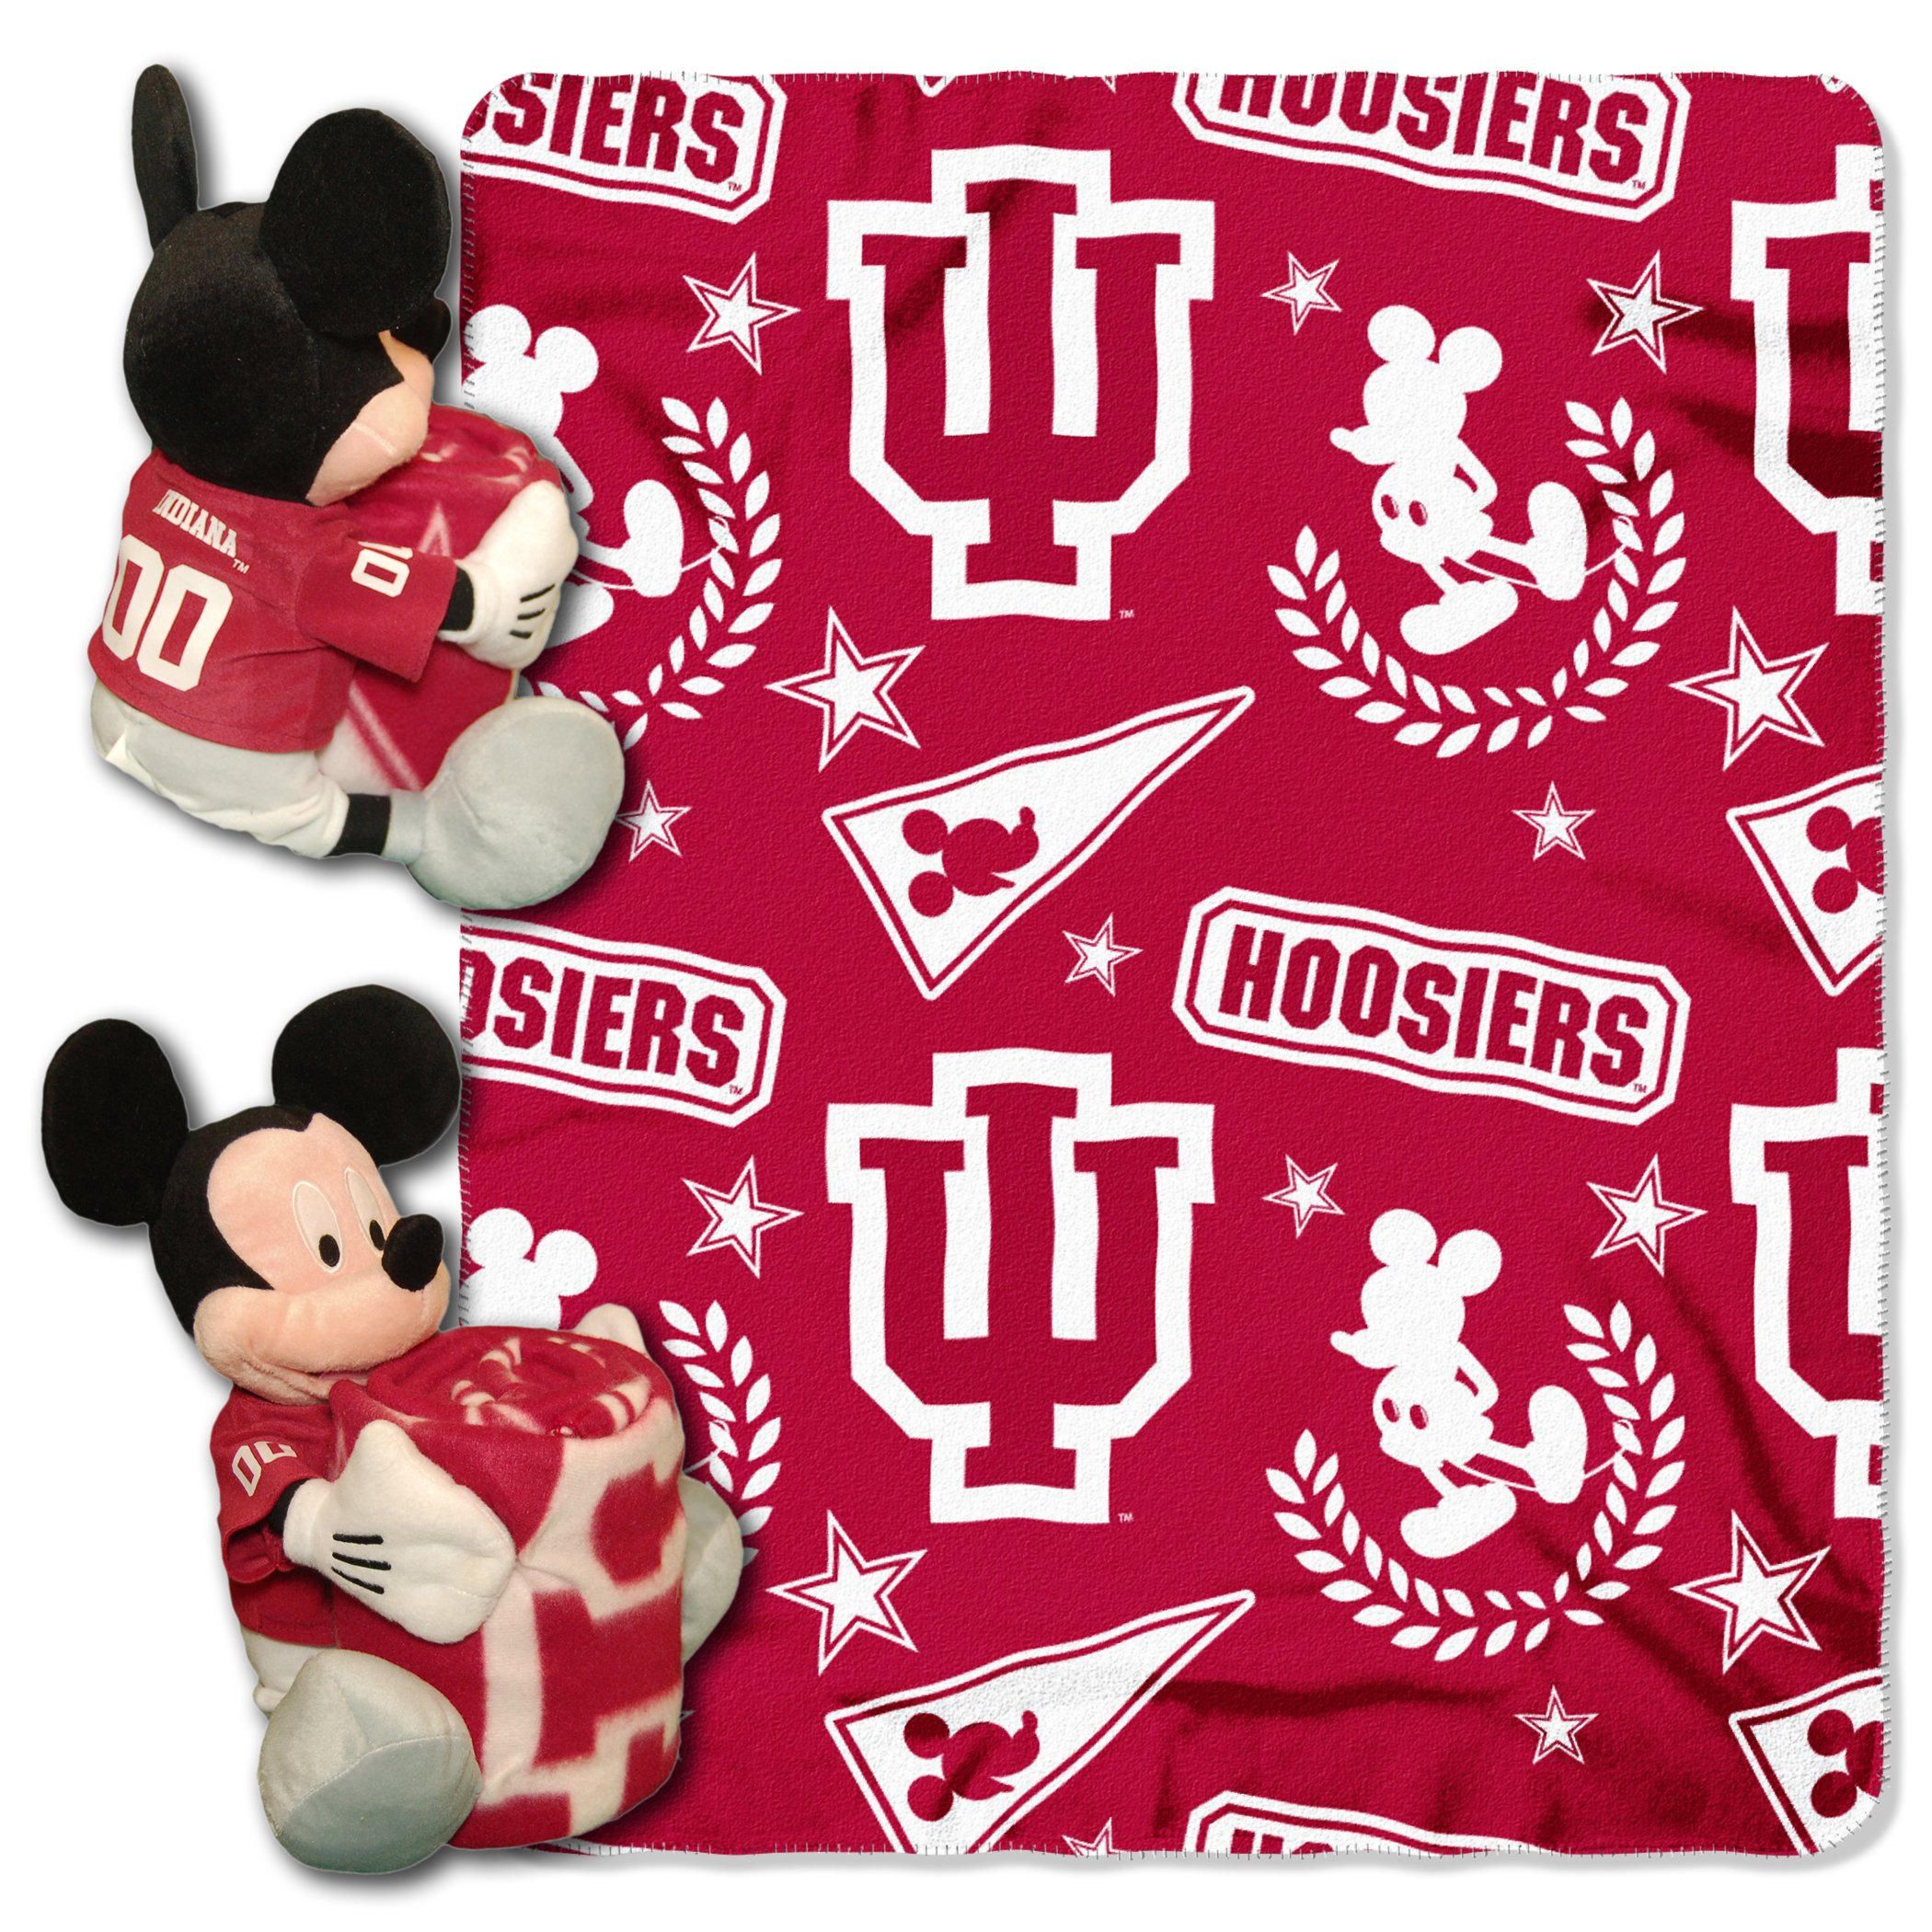 40 x 50 Officially Licensed NCAA Co-Branded Disneys Mickey Mouse Hugger and Fleece Throw Blanket Set Multi Color